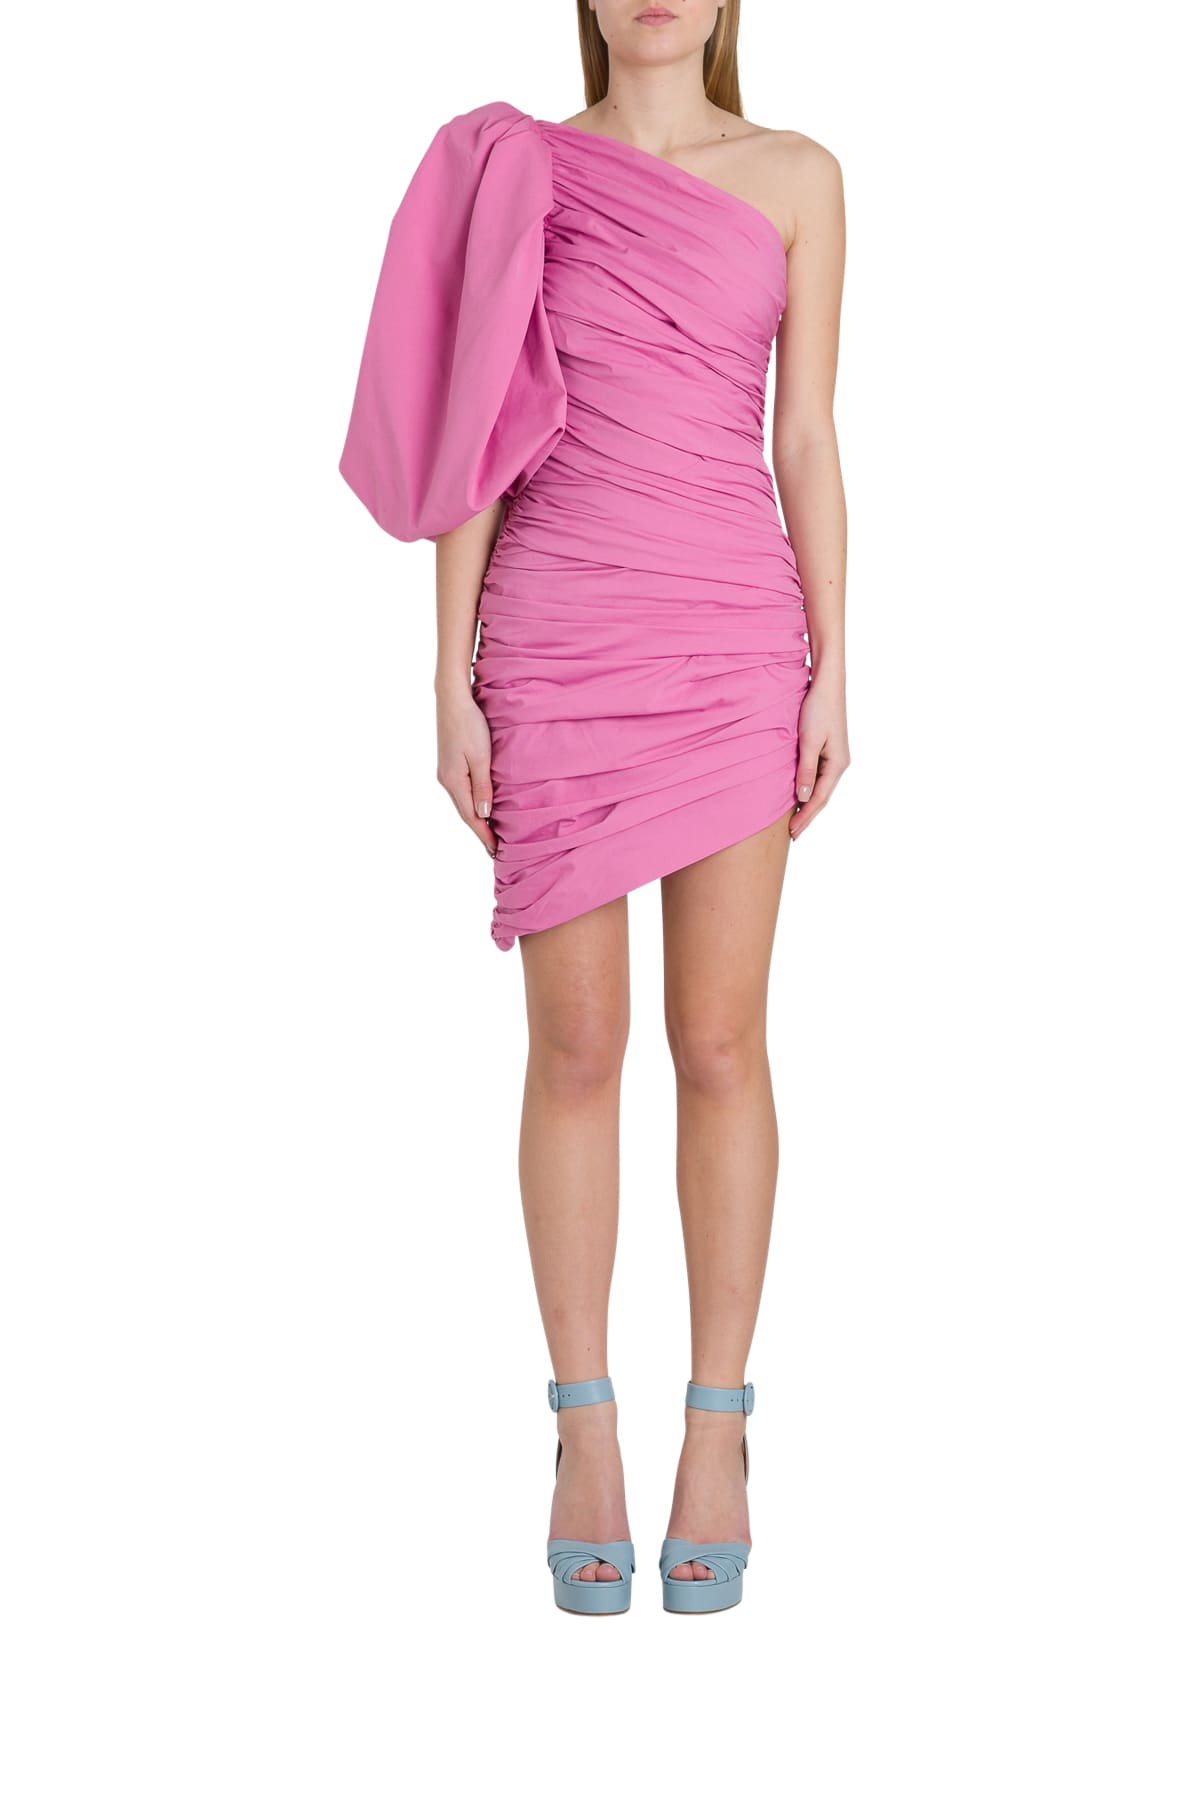 Buy Giuseppe di Morabito One-shoulder Dress With Balloon Sleeve online, shop Giuseppe di Morabito with free shipping